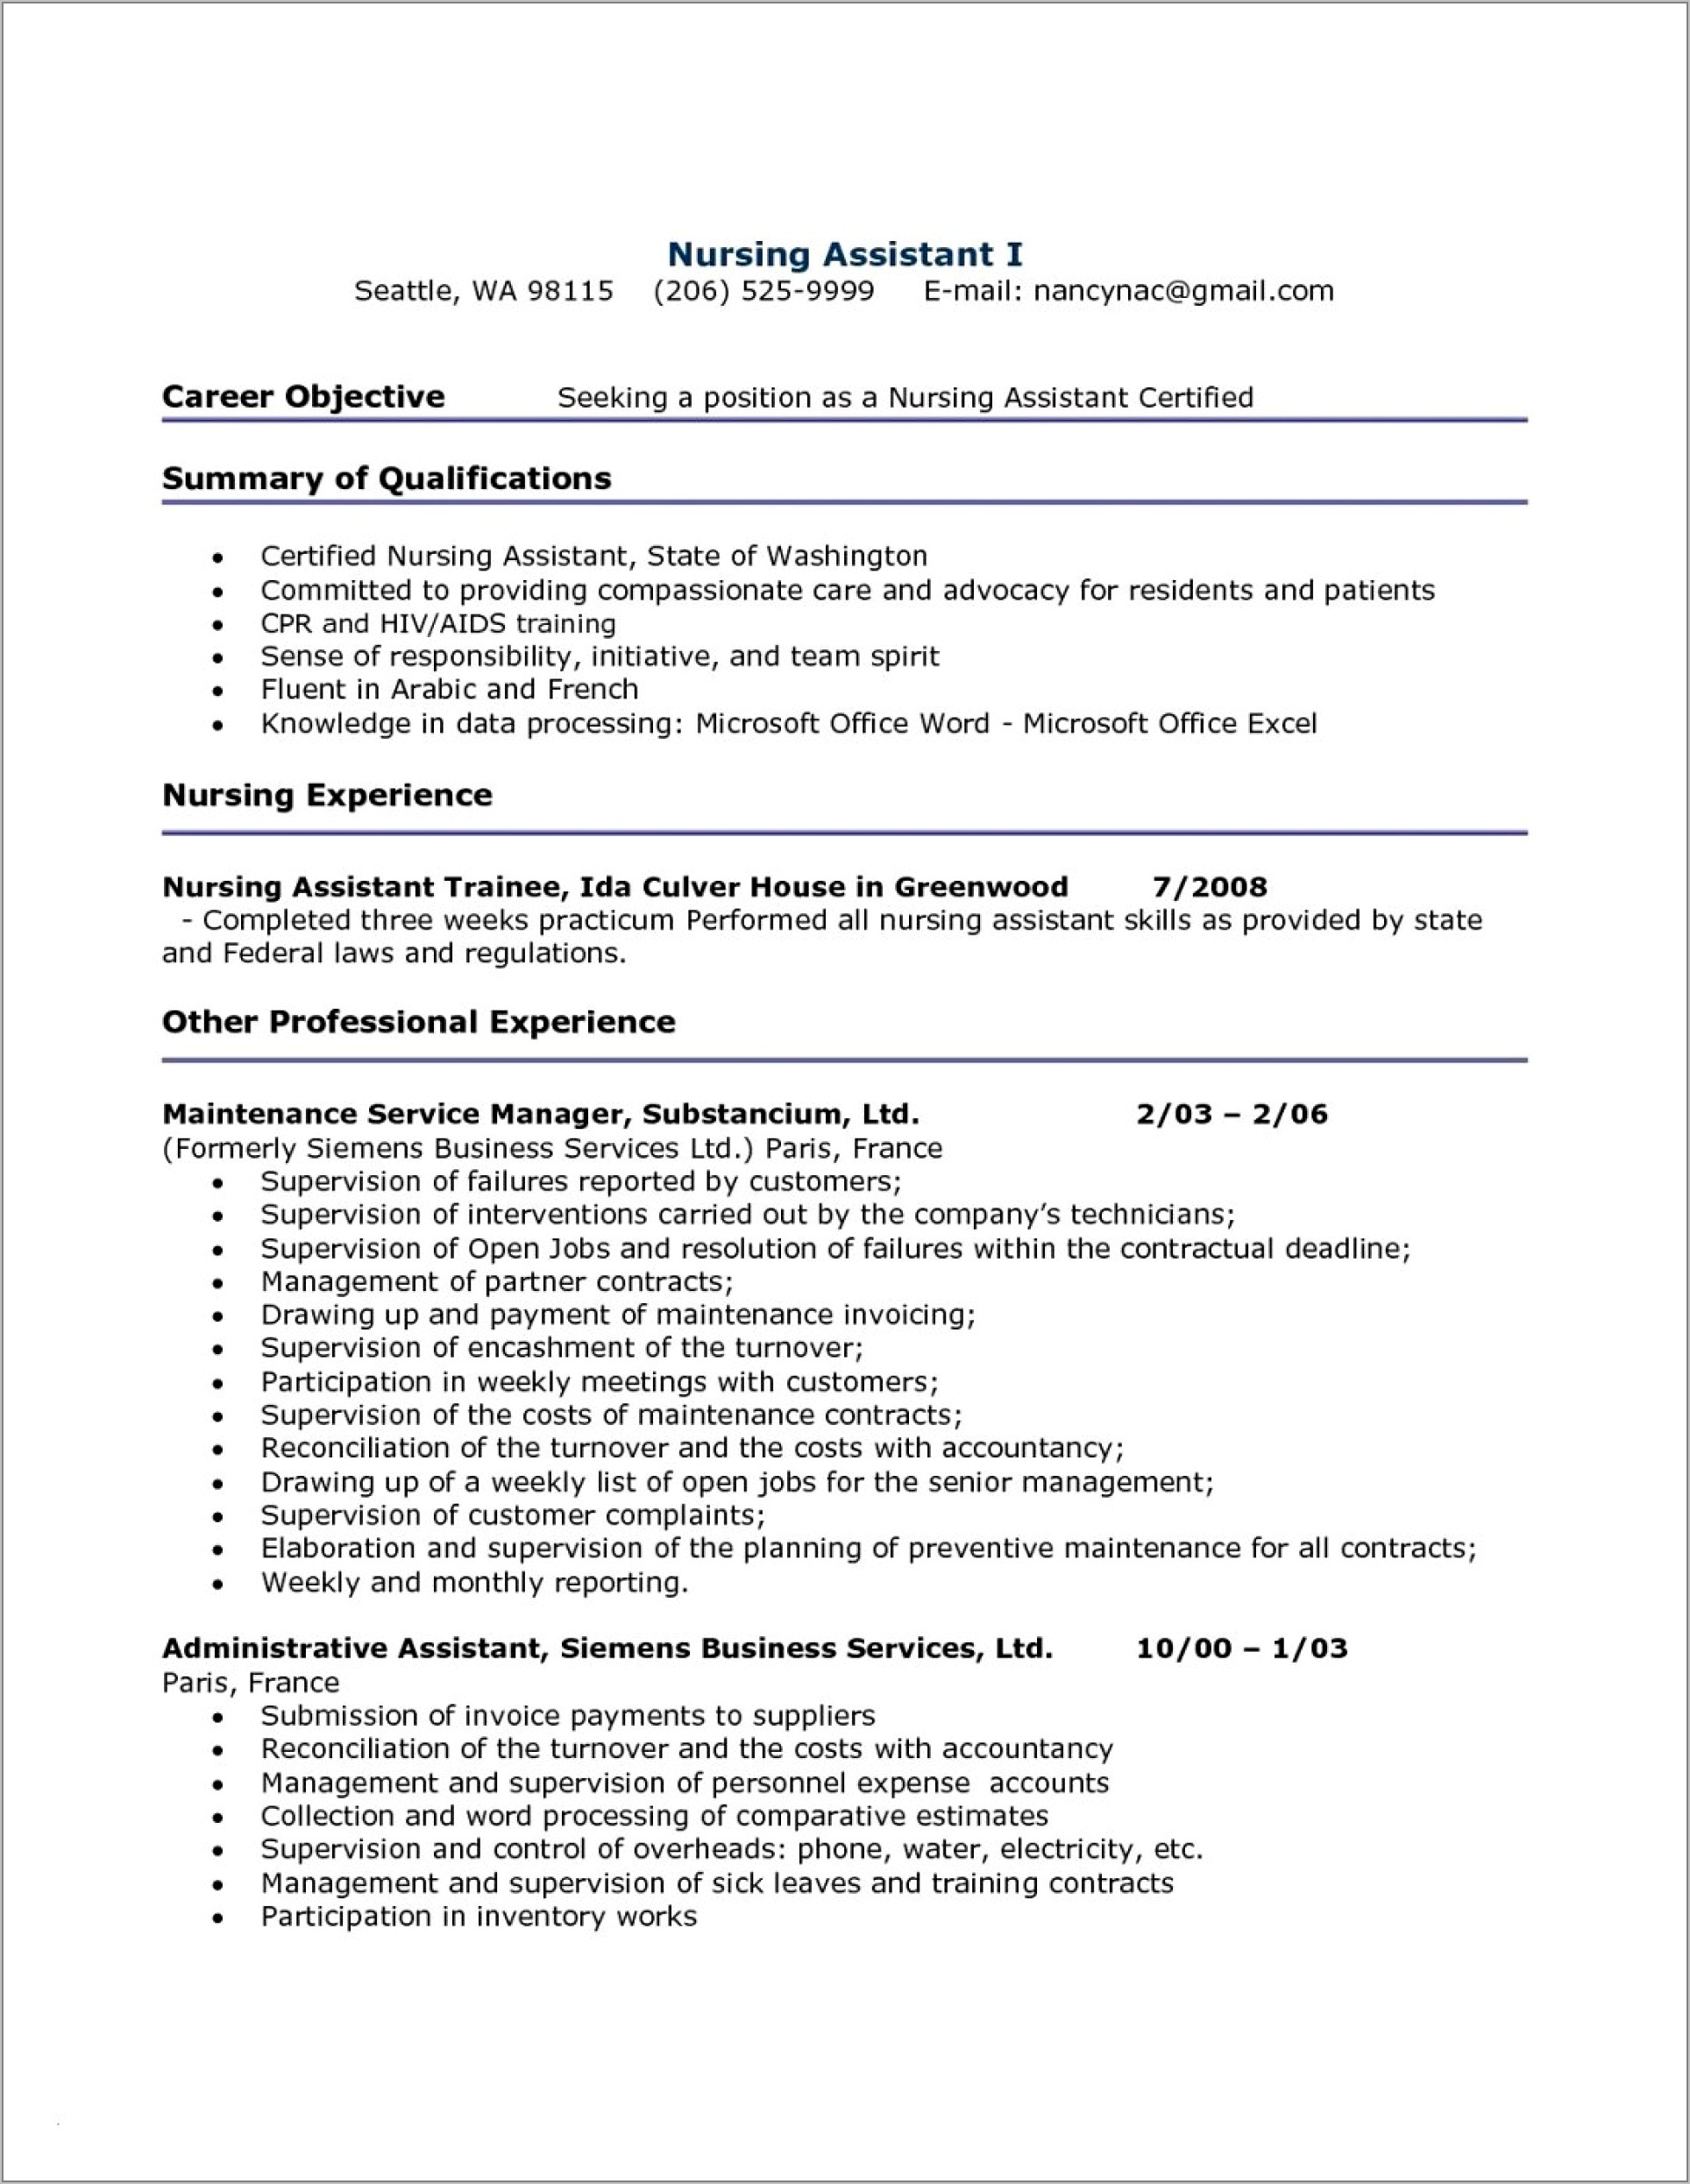 Subcontractor Agreement Template For Professional Services